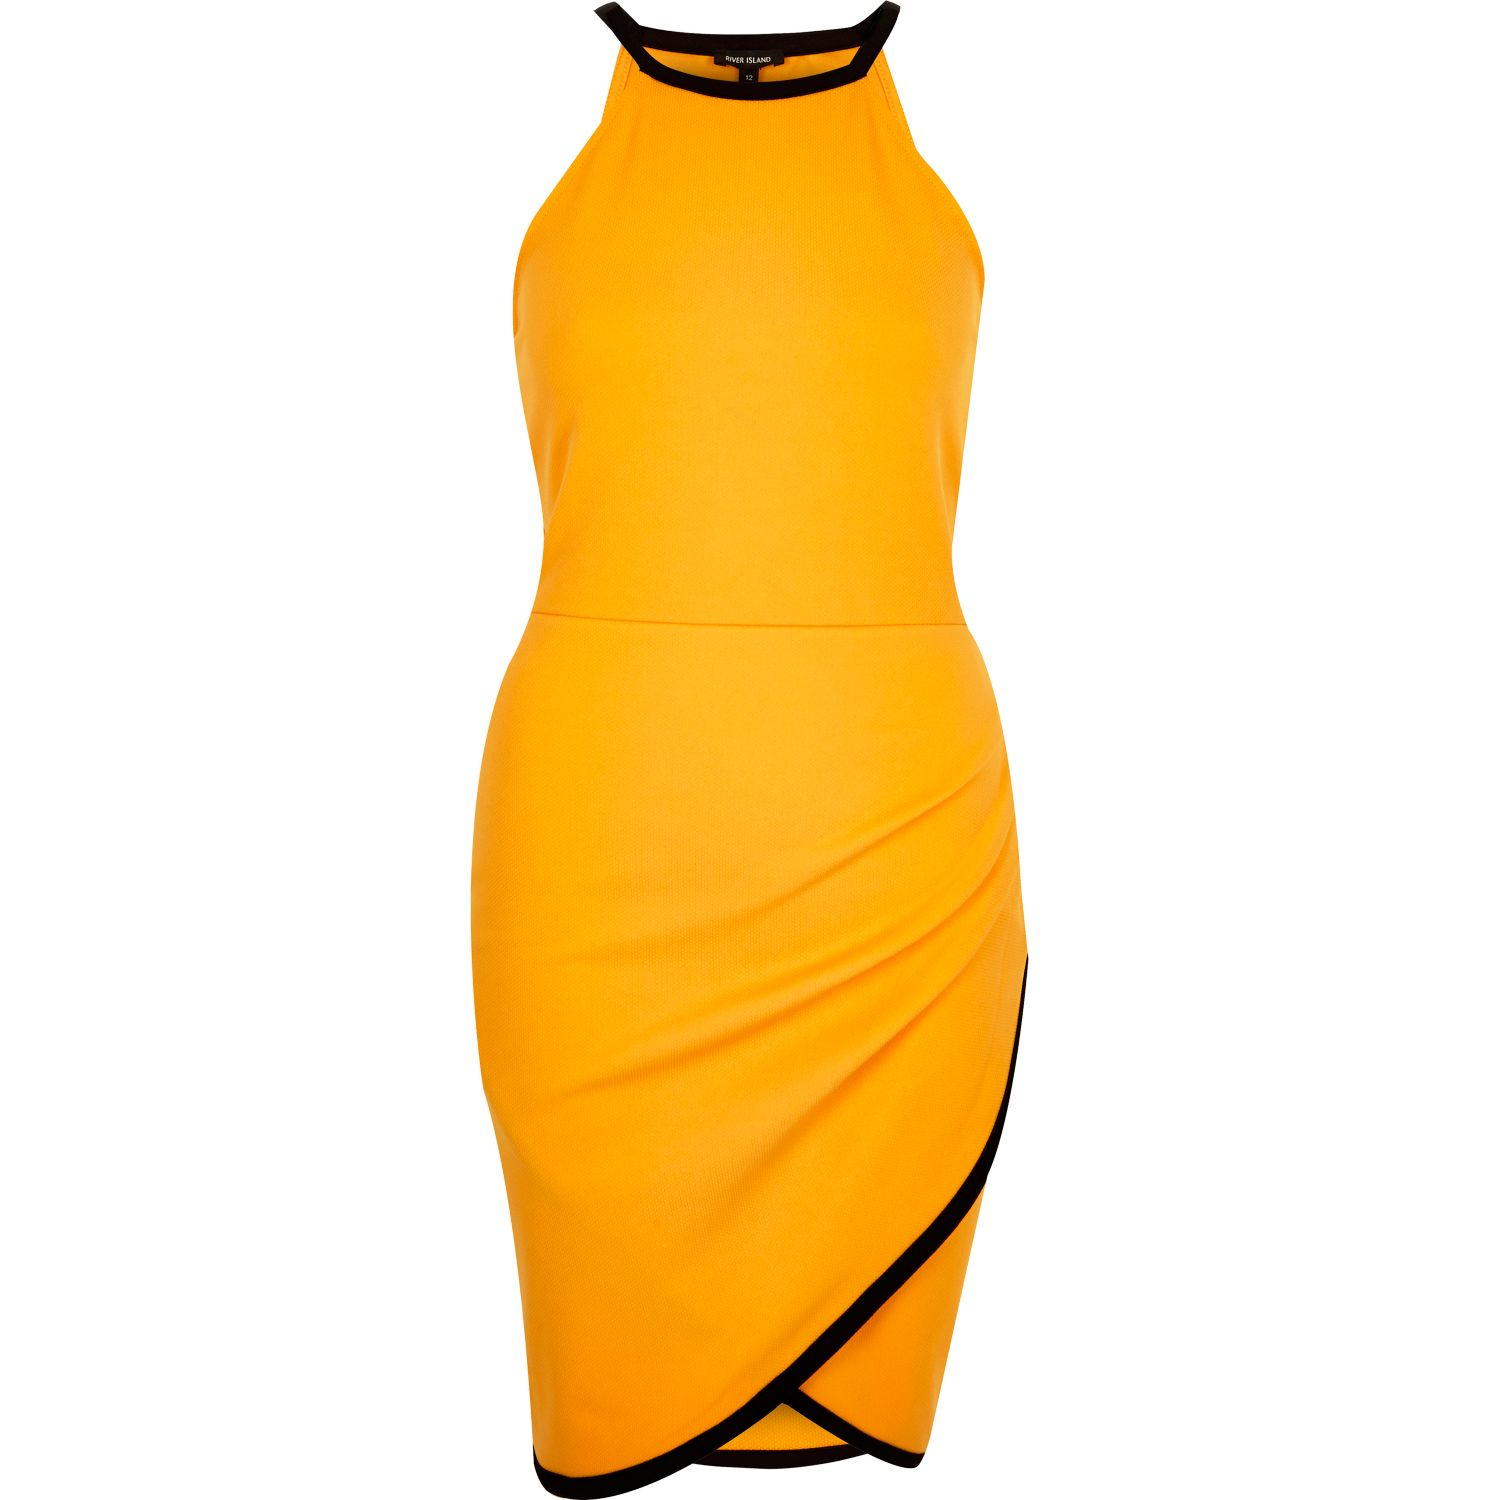 River Island Colour Block Asymmetric Wrap Bodycon Dress Sizes 6 to 16